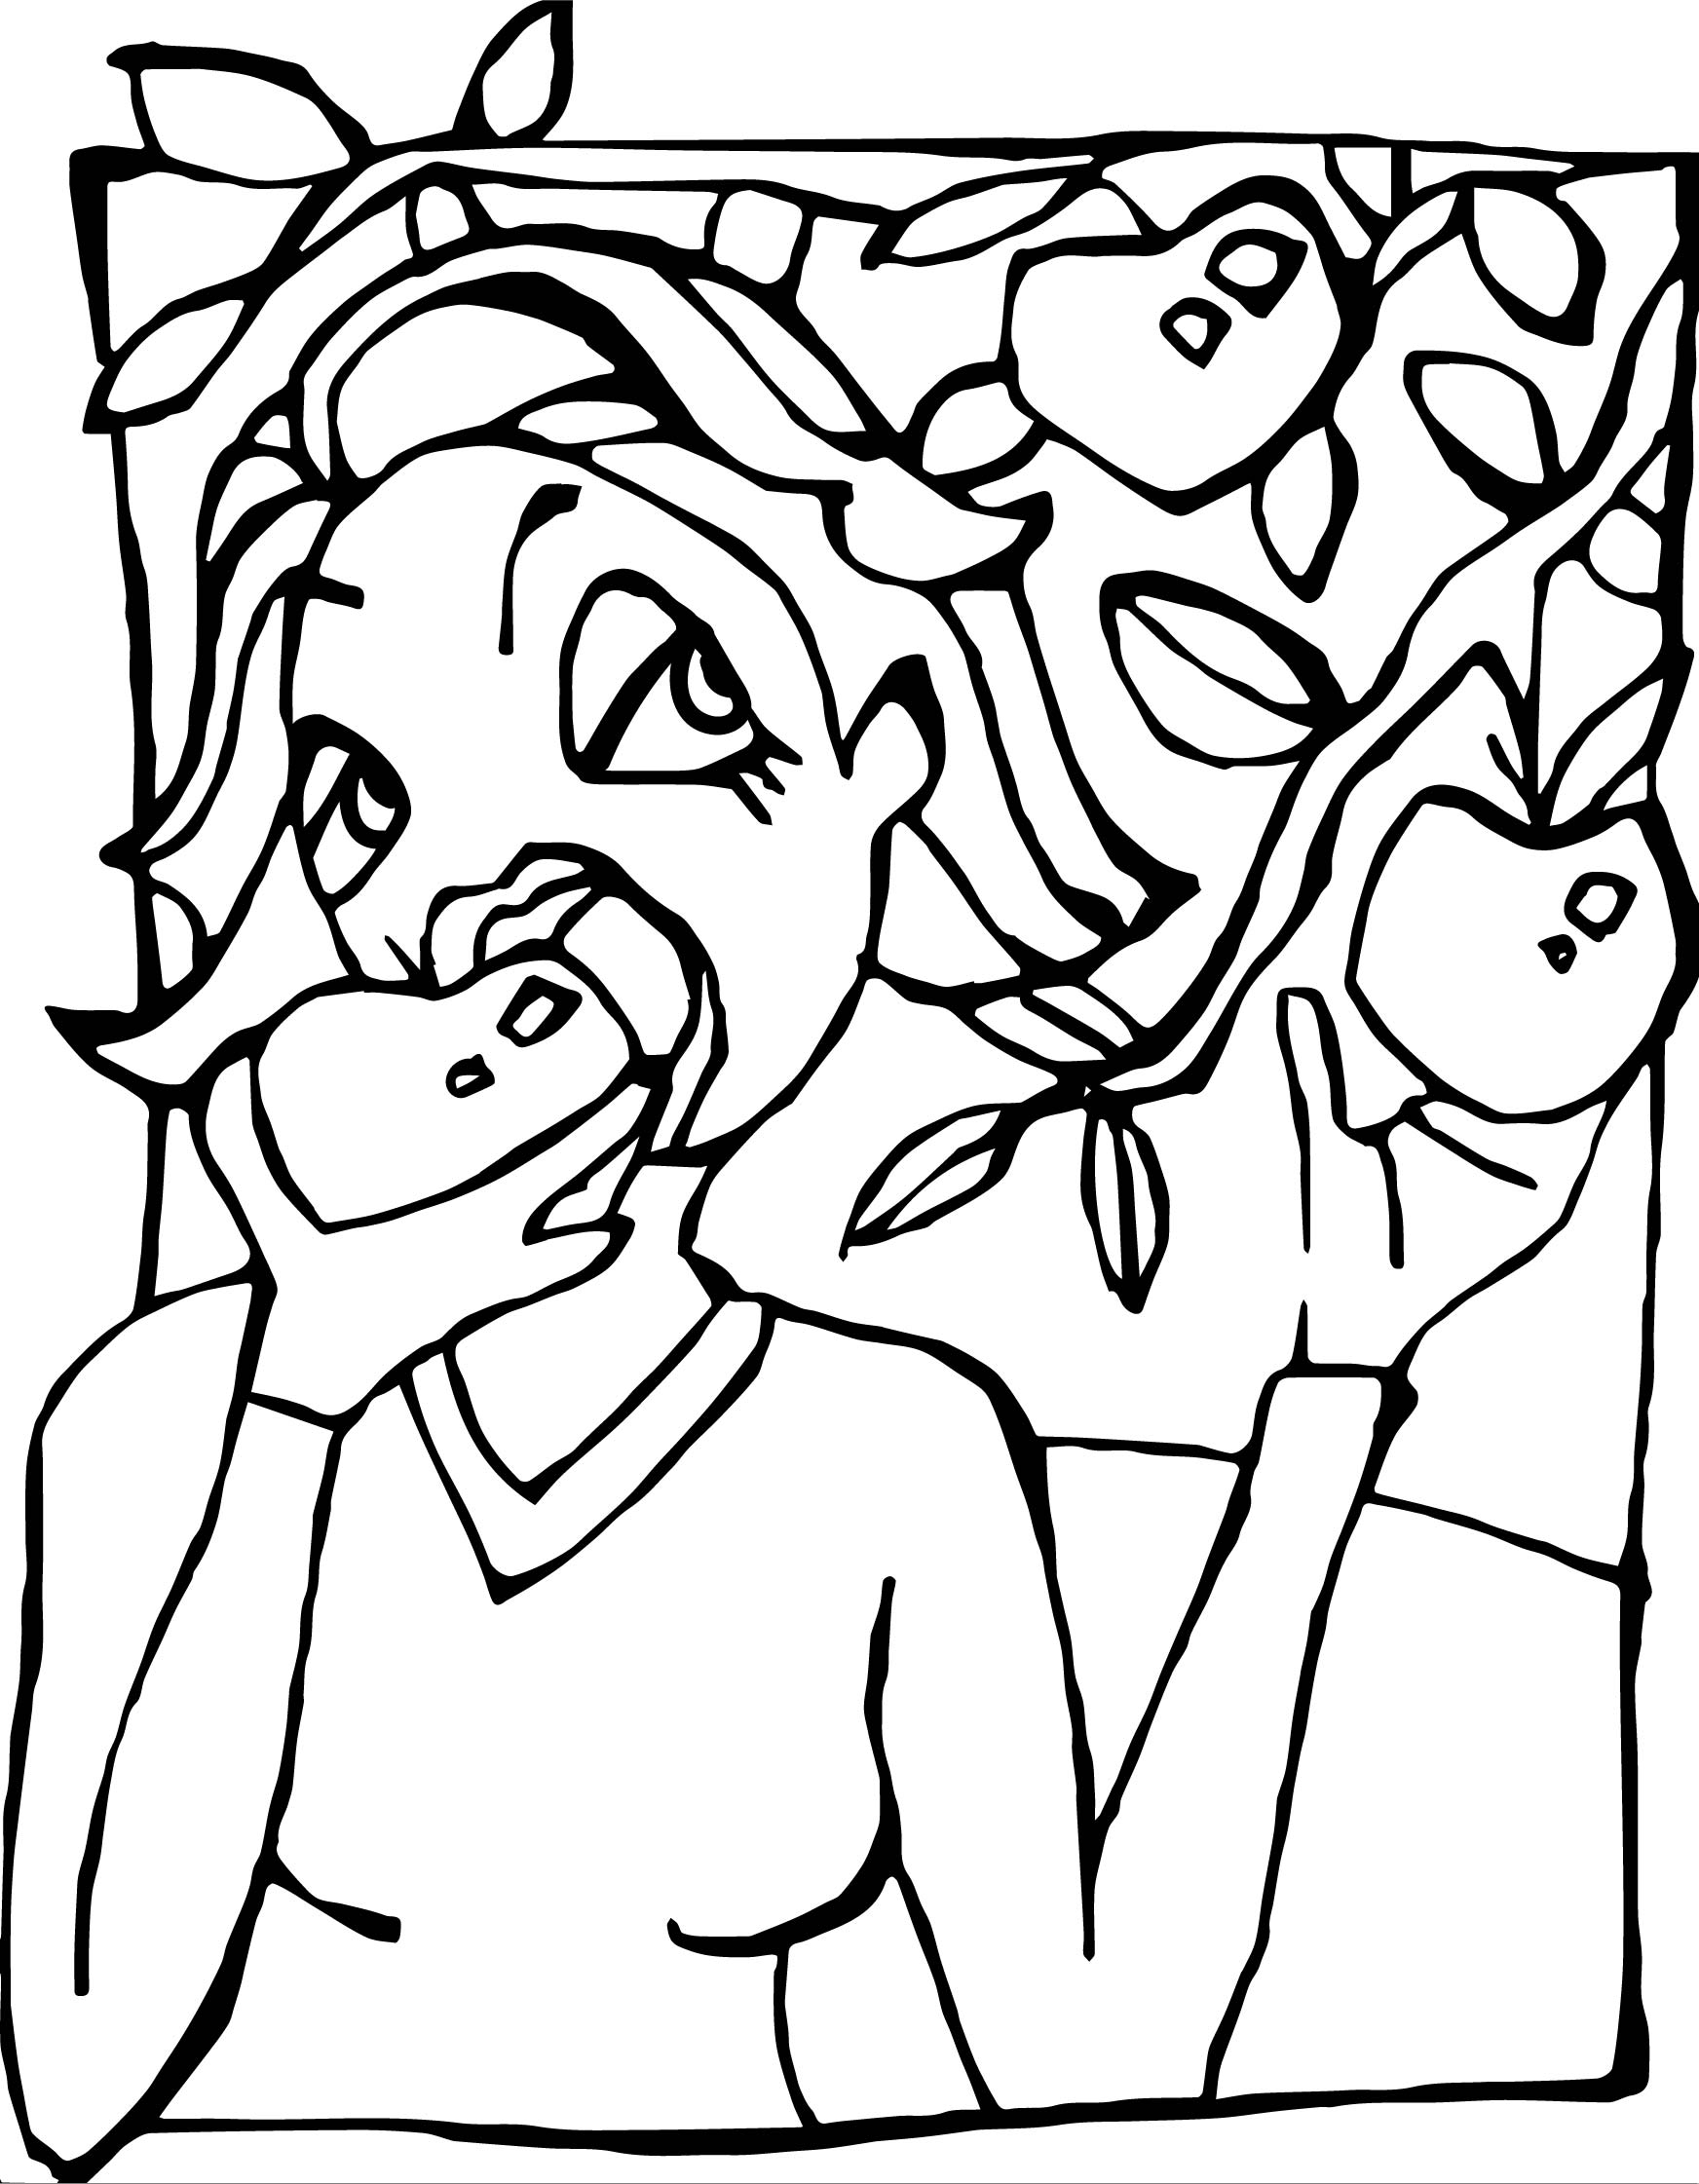 Woman Eating Apple Coloring Page